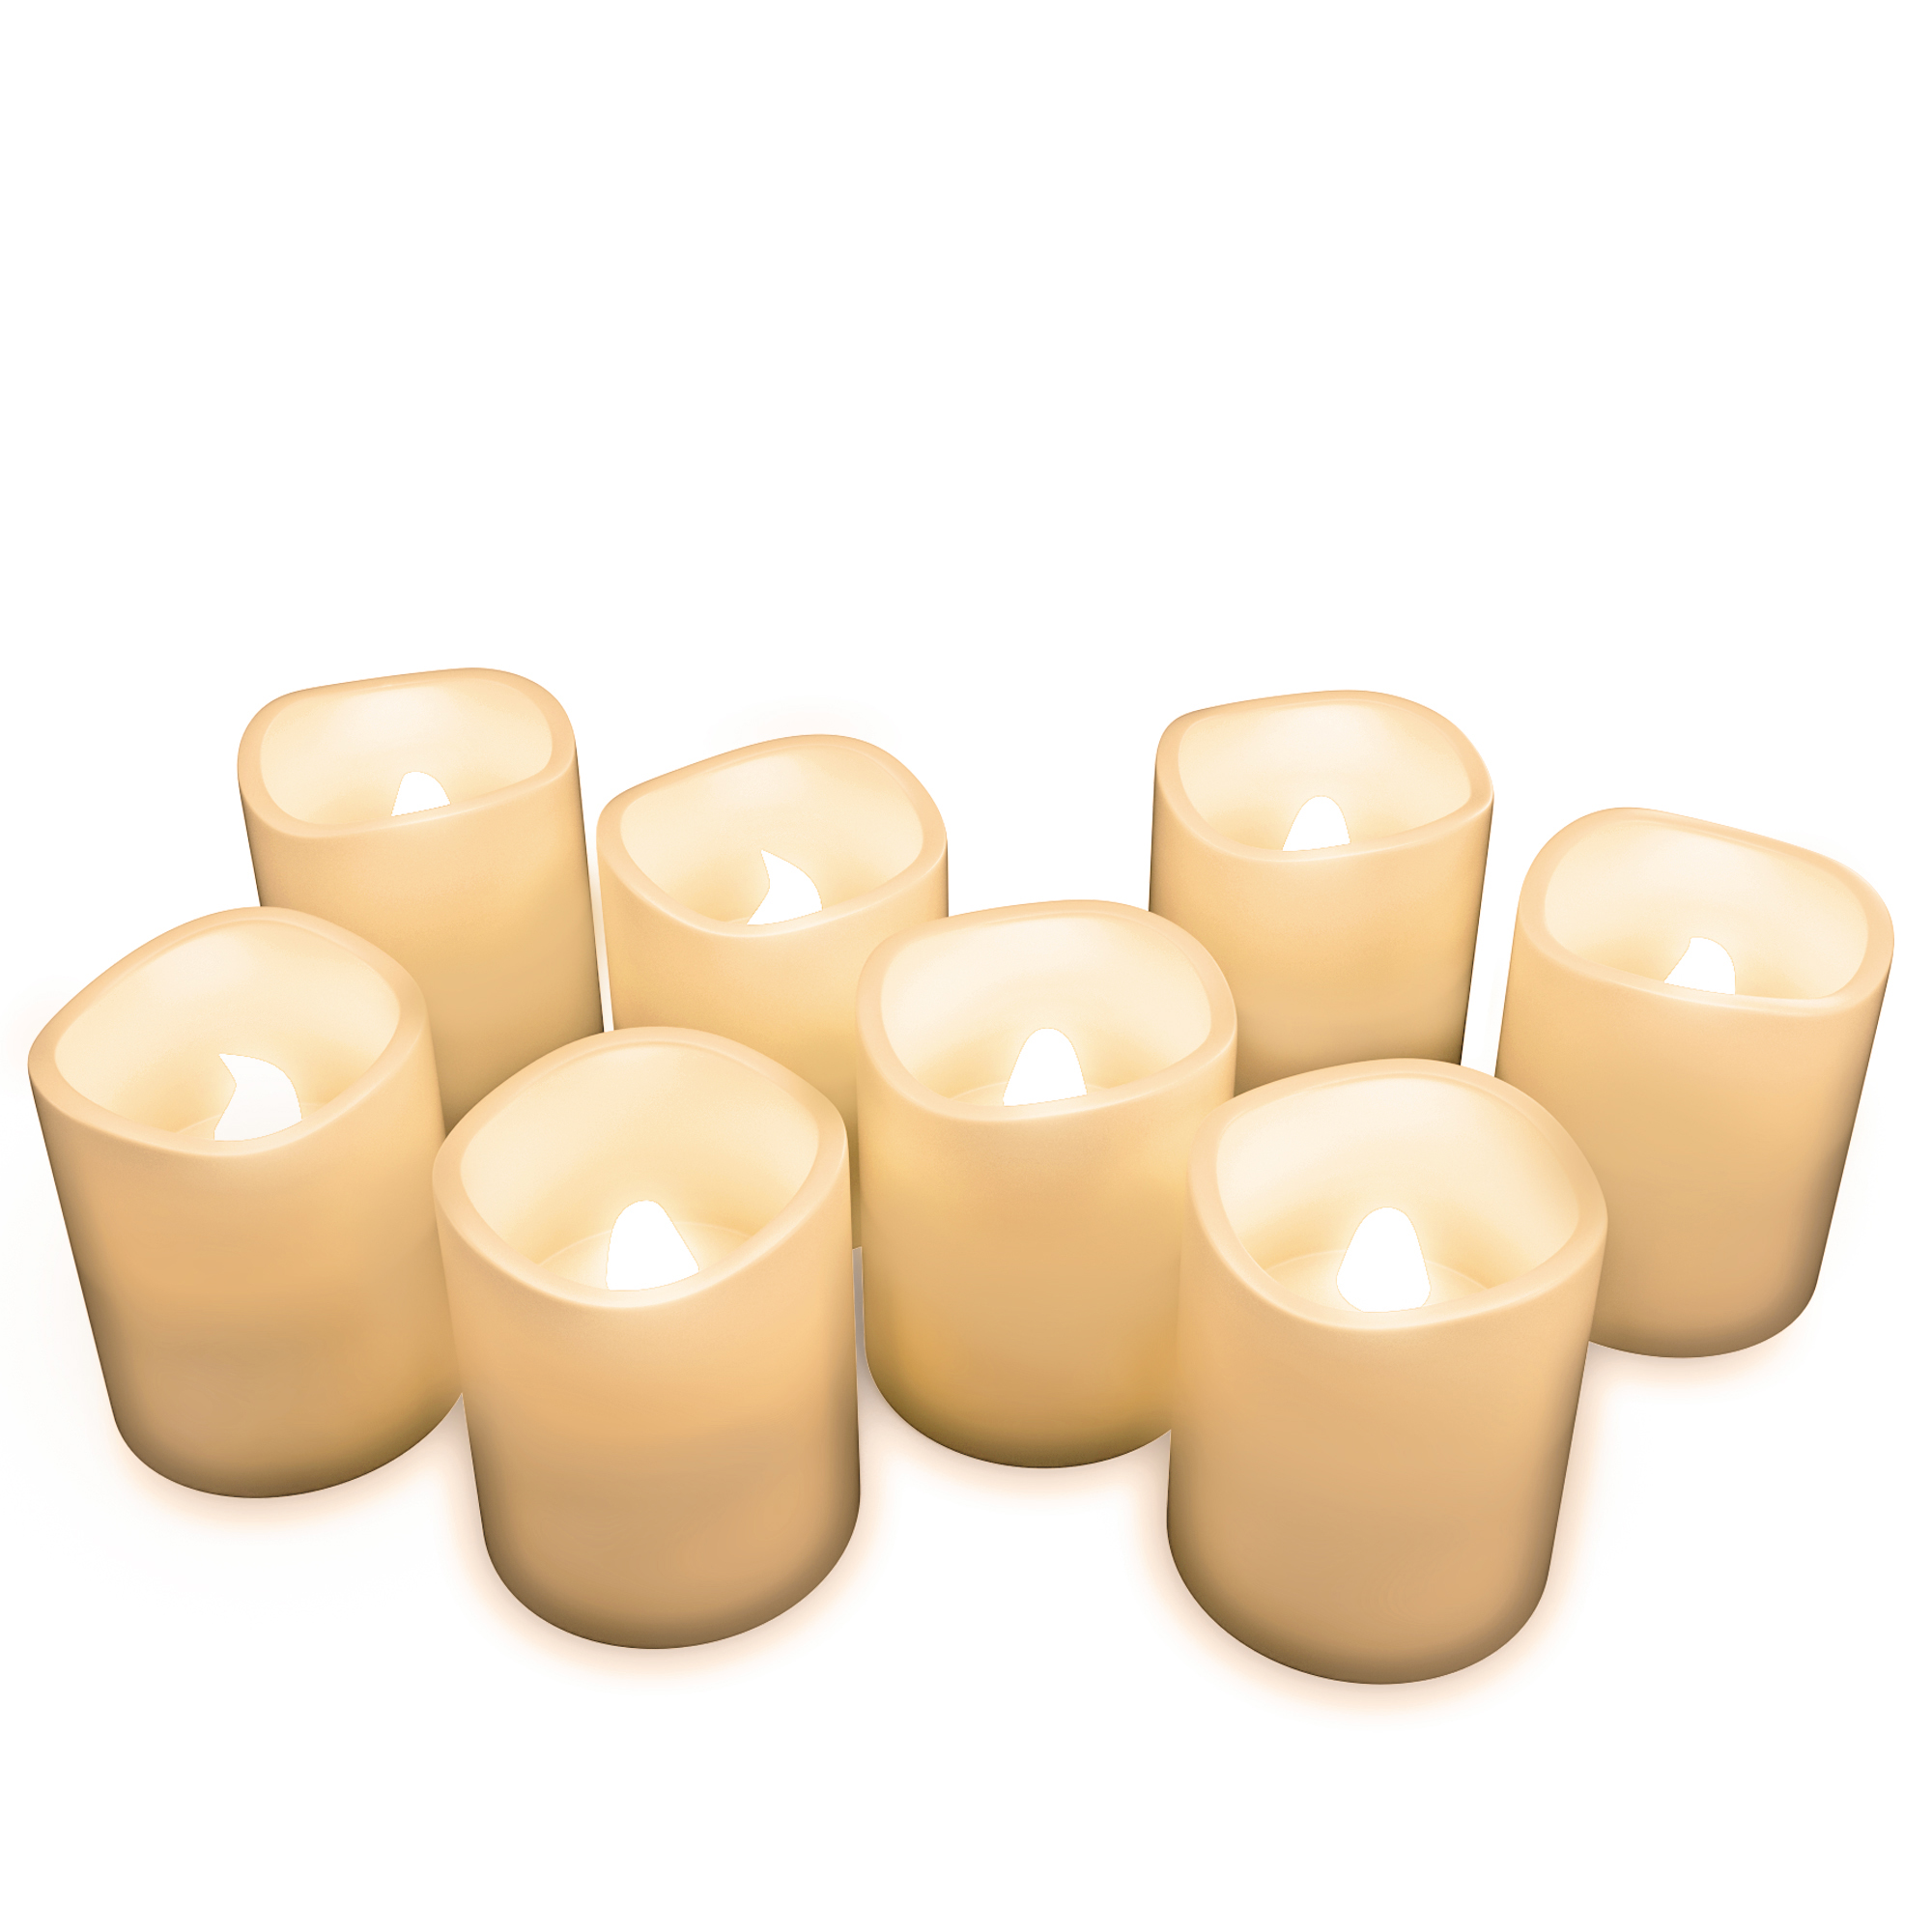 Flameless Candles, Battery Operated LED Bulb, 8-Piece Candle Set by Lavish Home – For Votive Holders – Home, Wedding, Bridal Shower, Christmas Decor